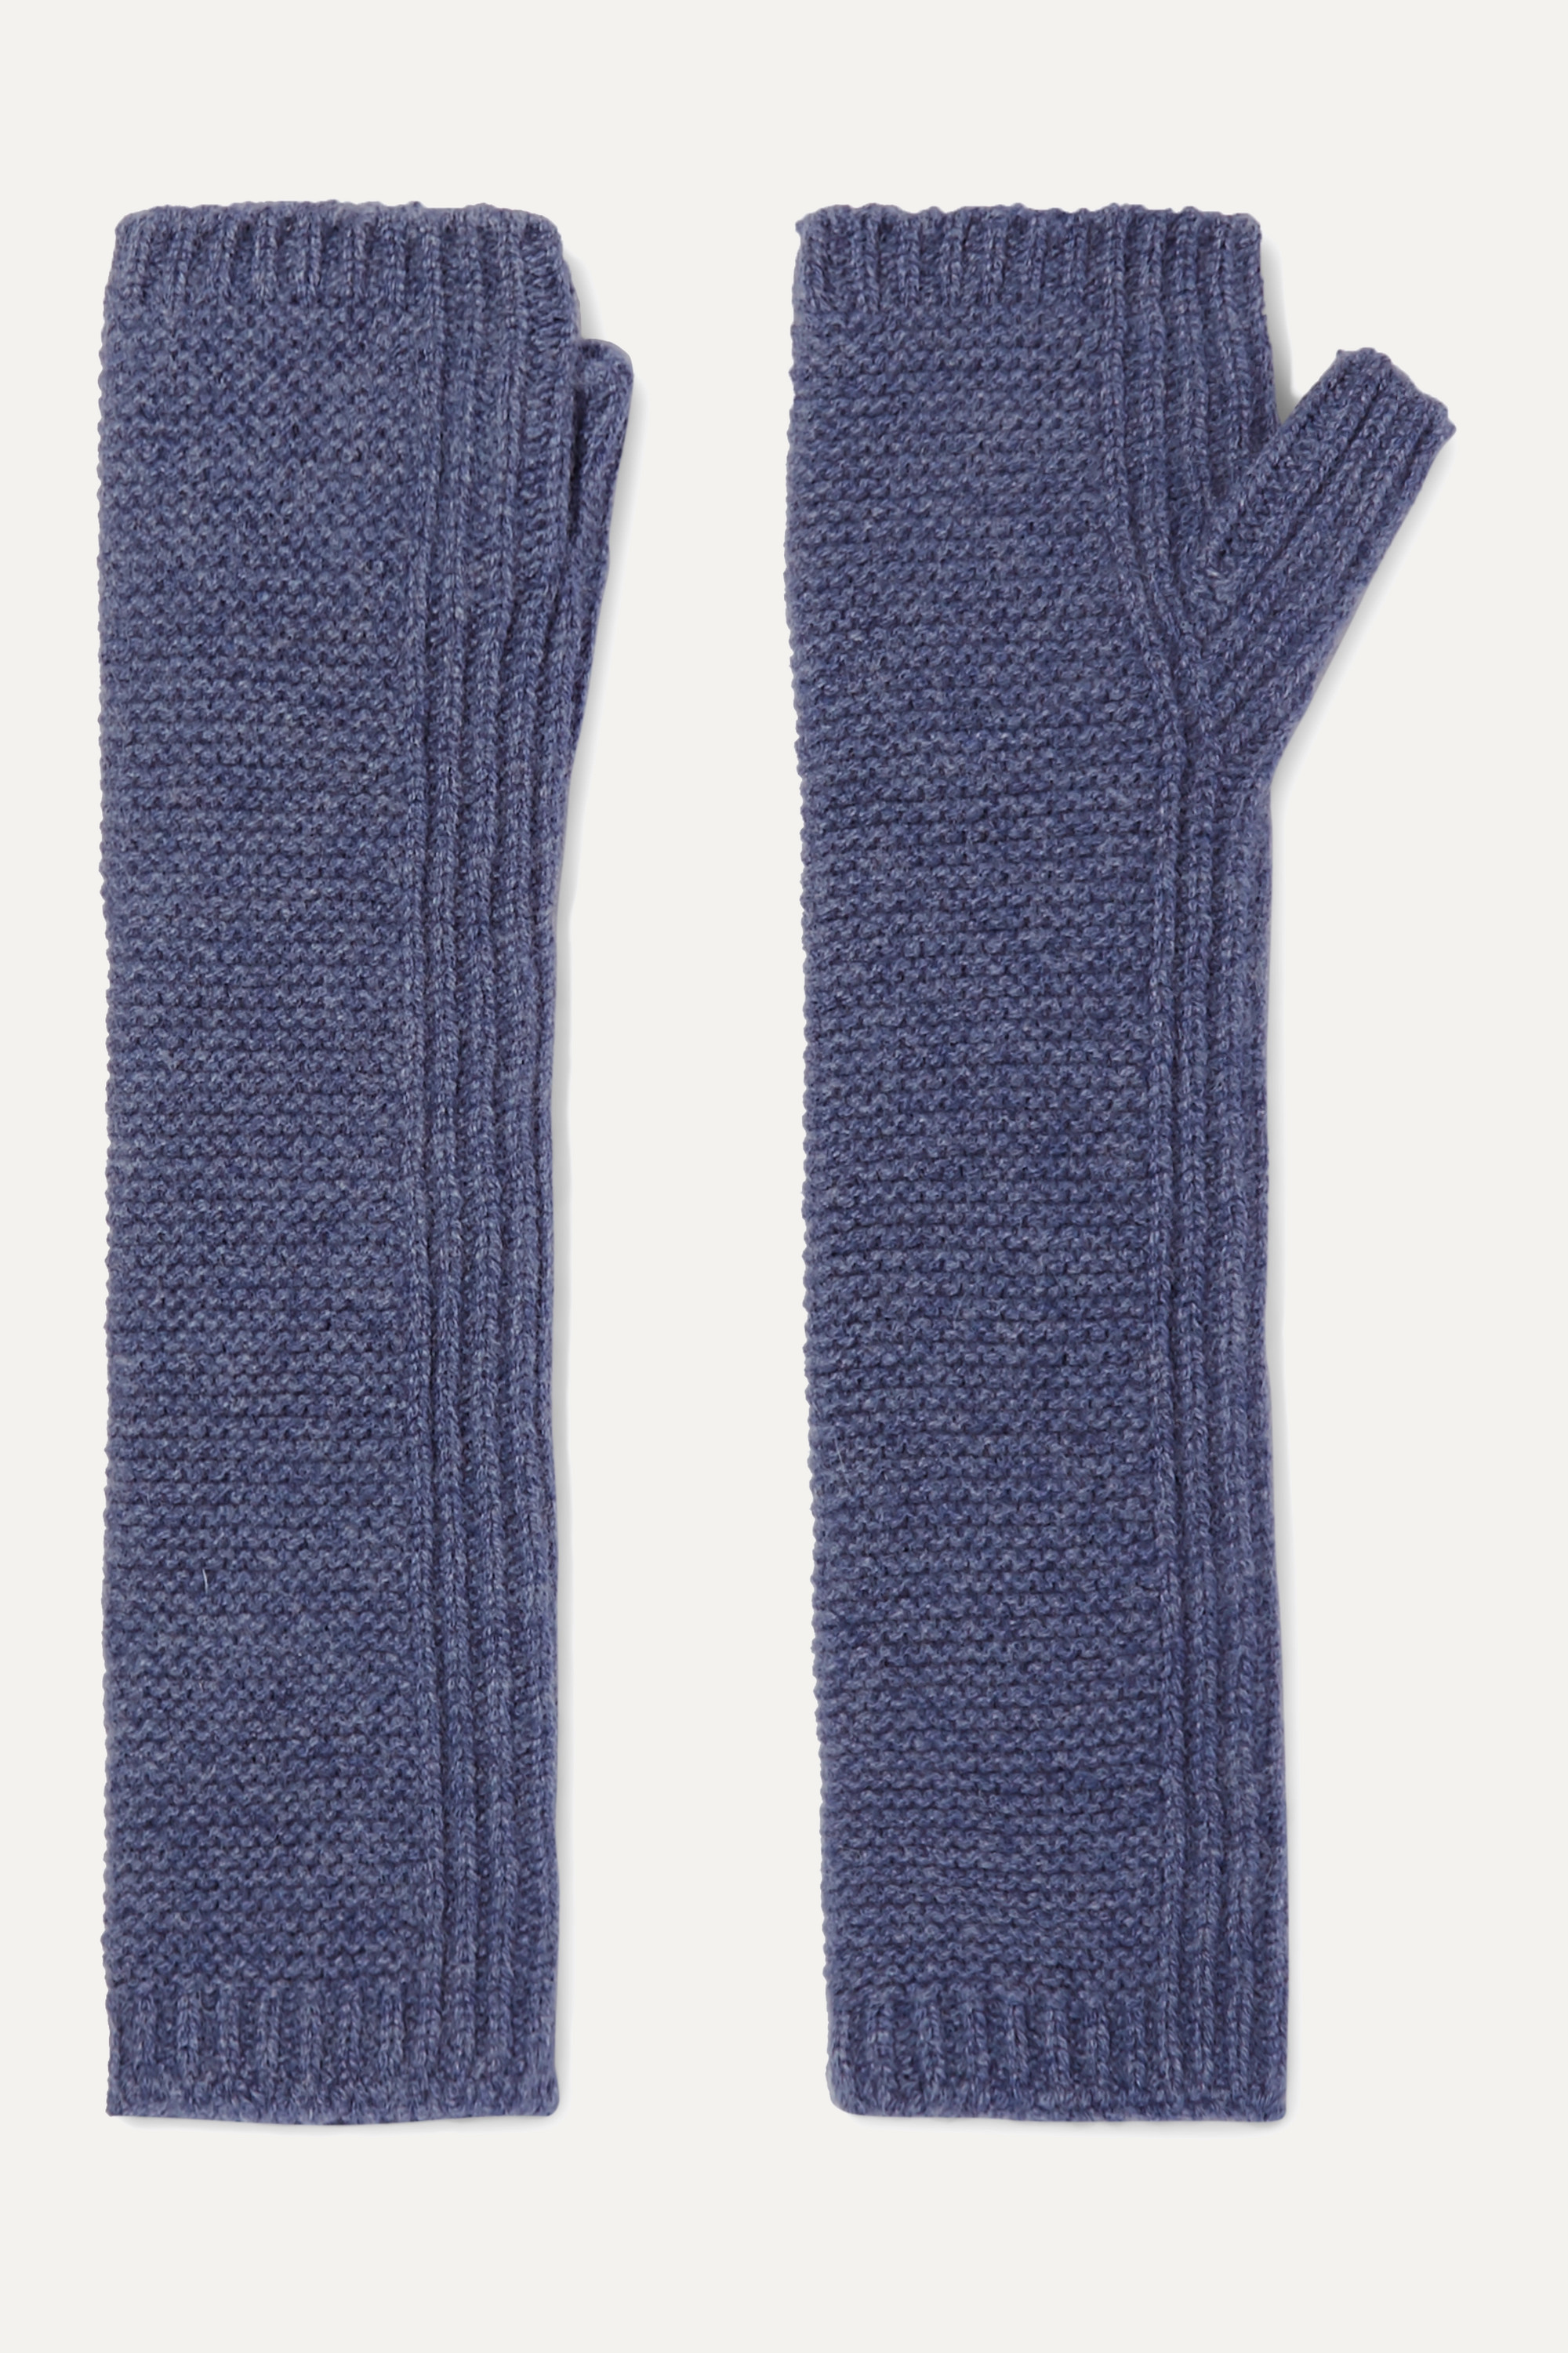 Johnstons of Elgin Cashmere wrist warmers